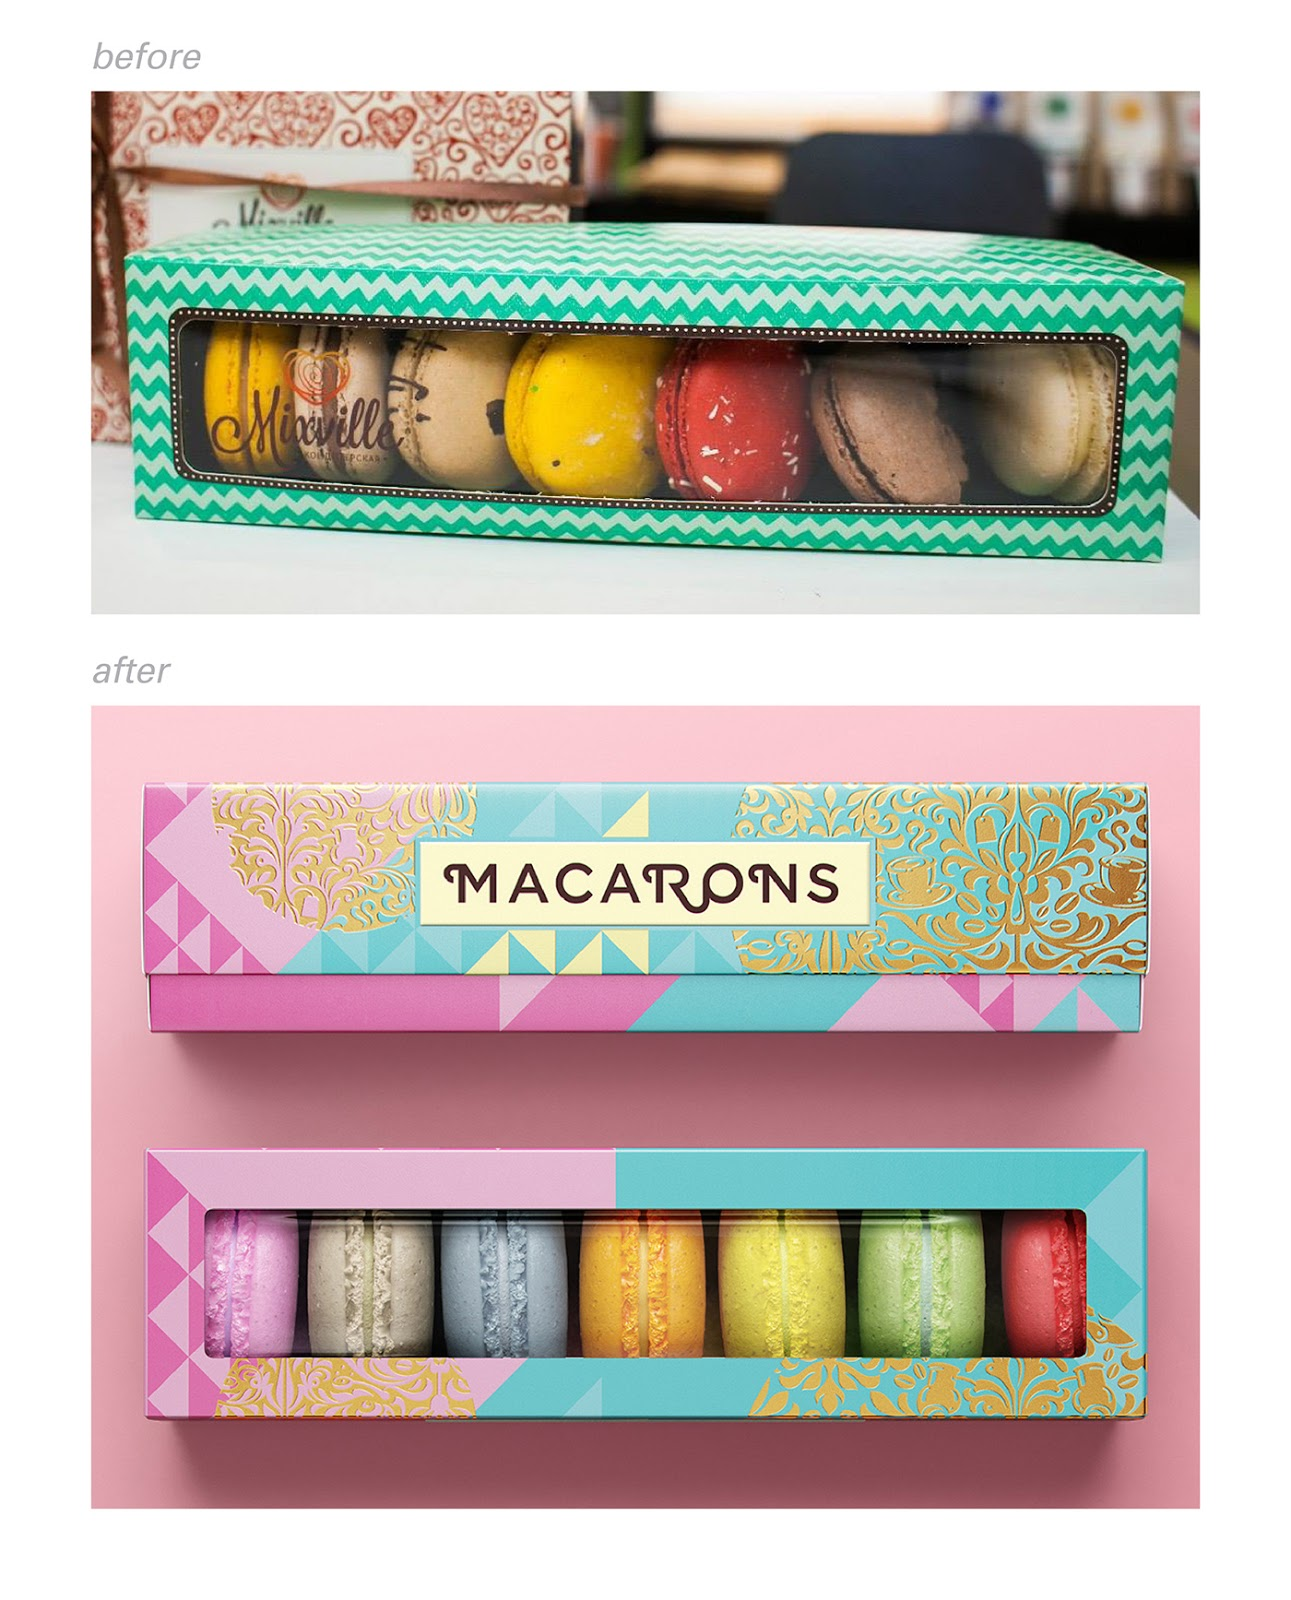 Packaging For Macarons Macarons on packaging of the world creative package design gallery sisterspd